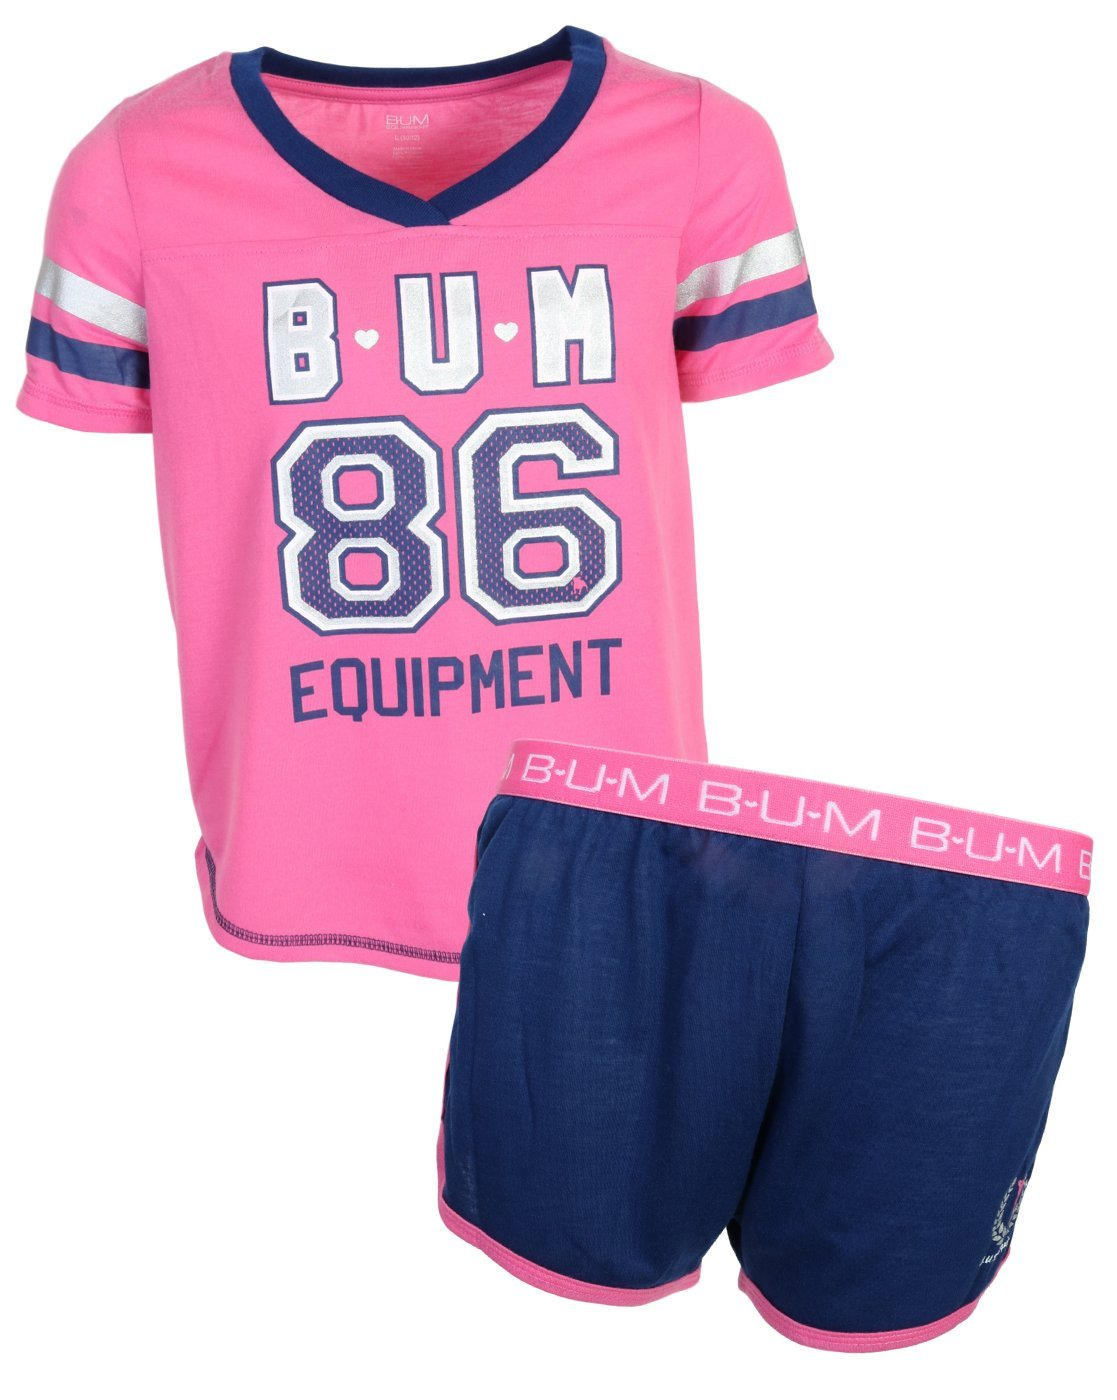 B.U.M. Equipment Girl's Summer Pajamas Sleepwear Short Set, Fuchsia, Large/10-12'